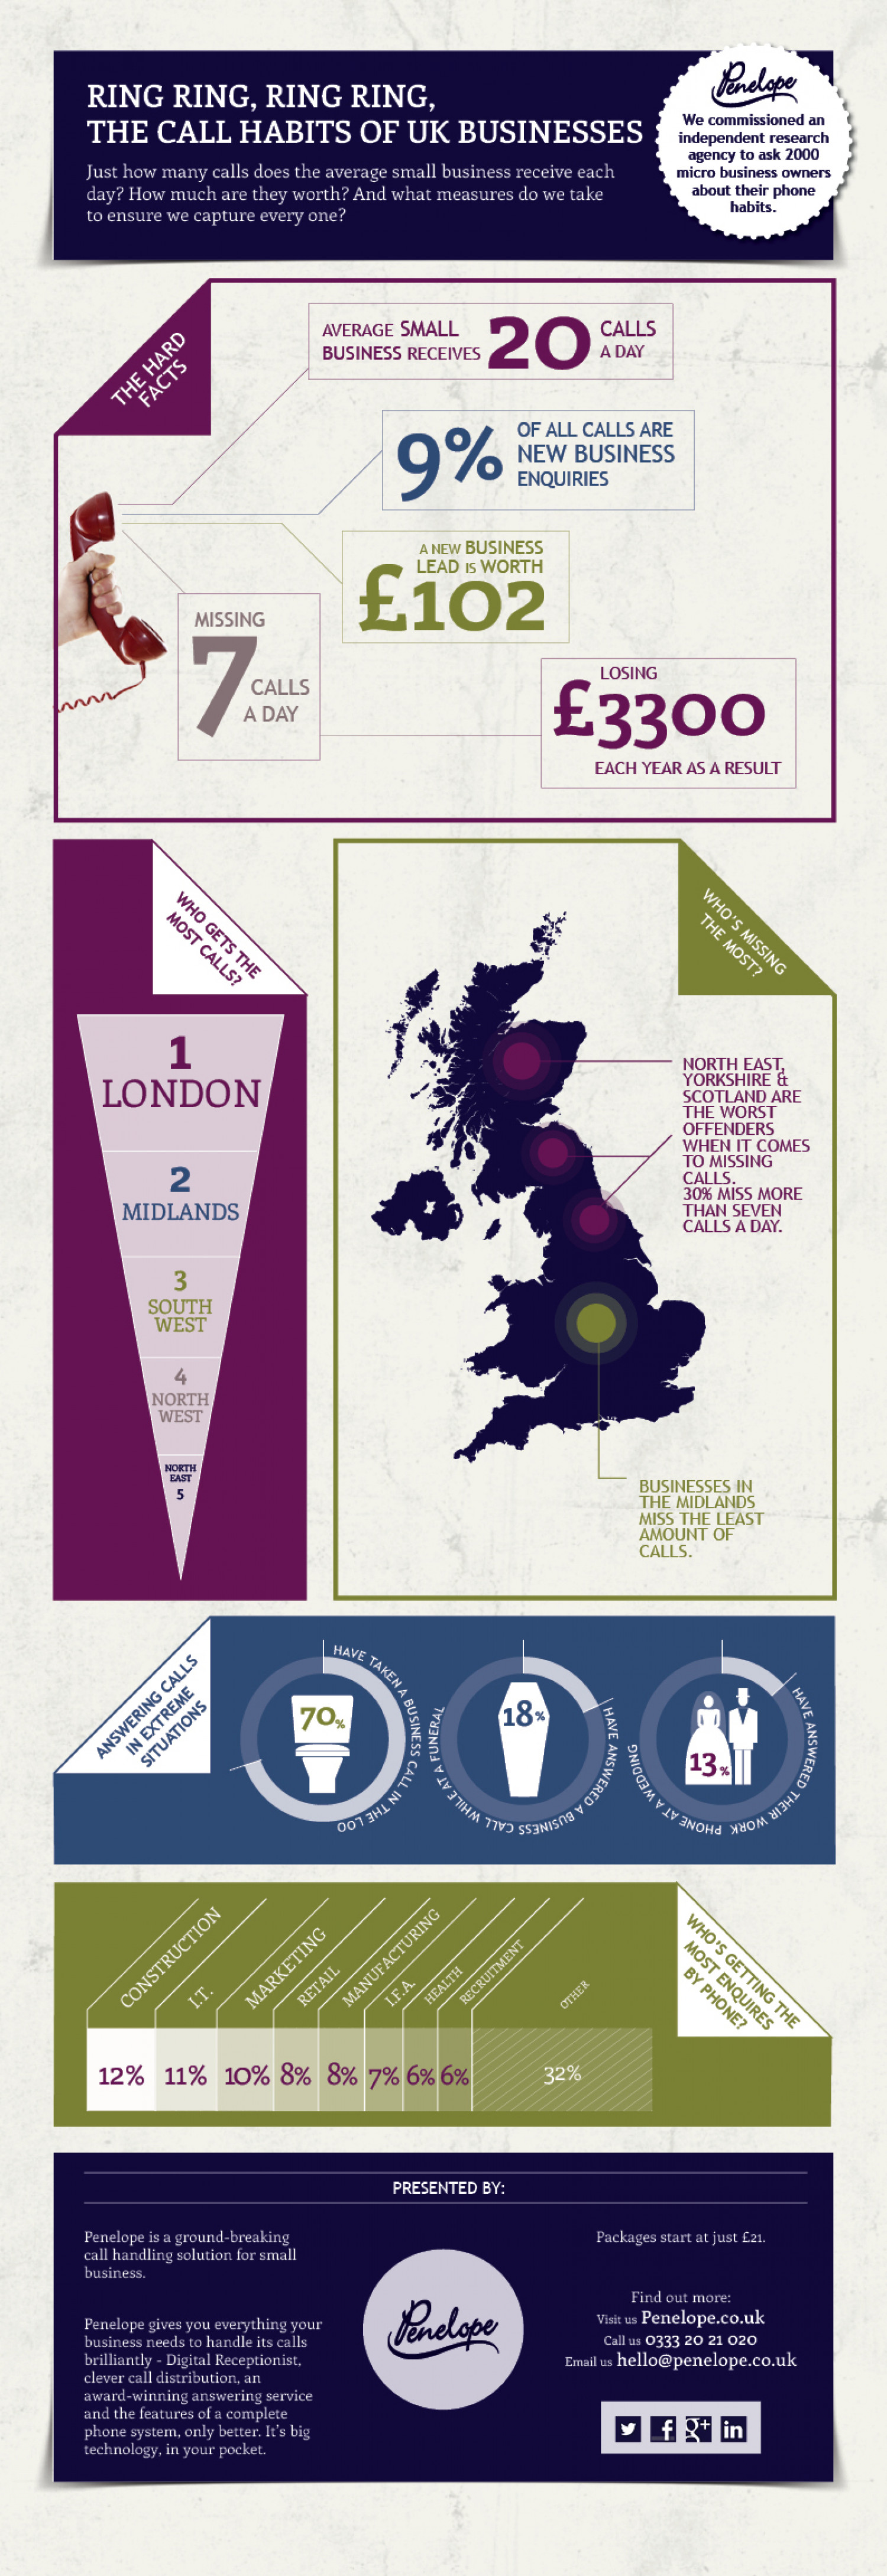 The Call Handling Habits of UK Businesses Infographic